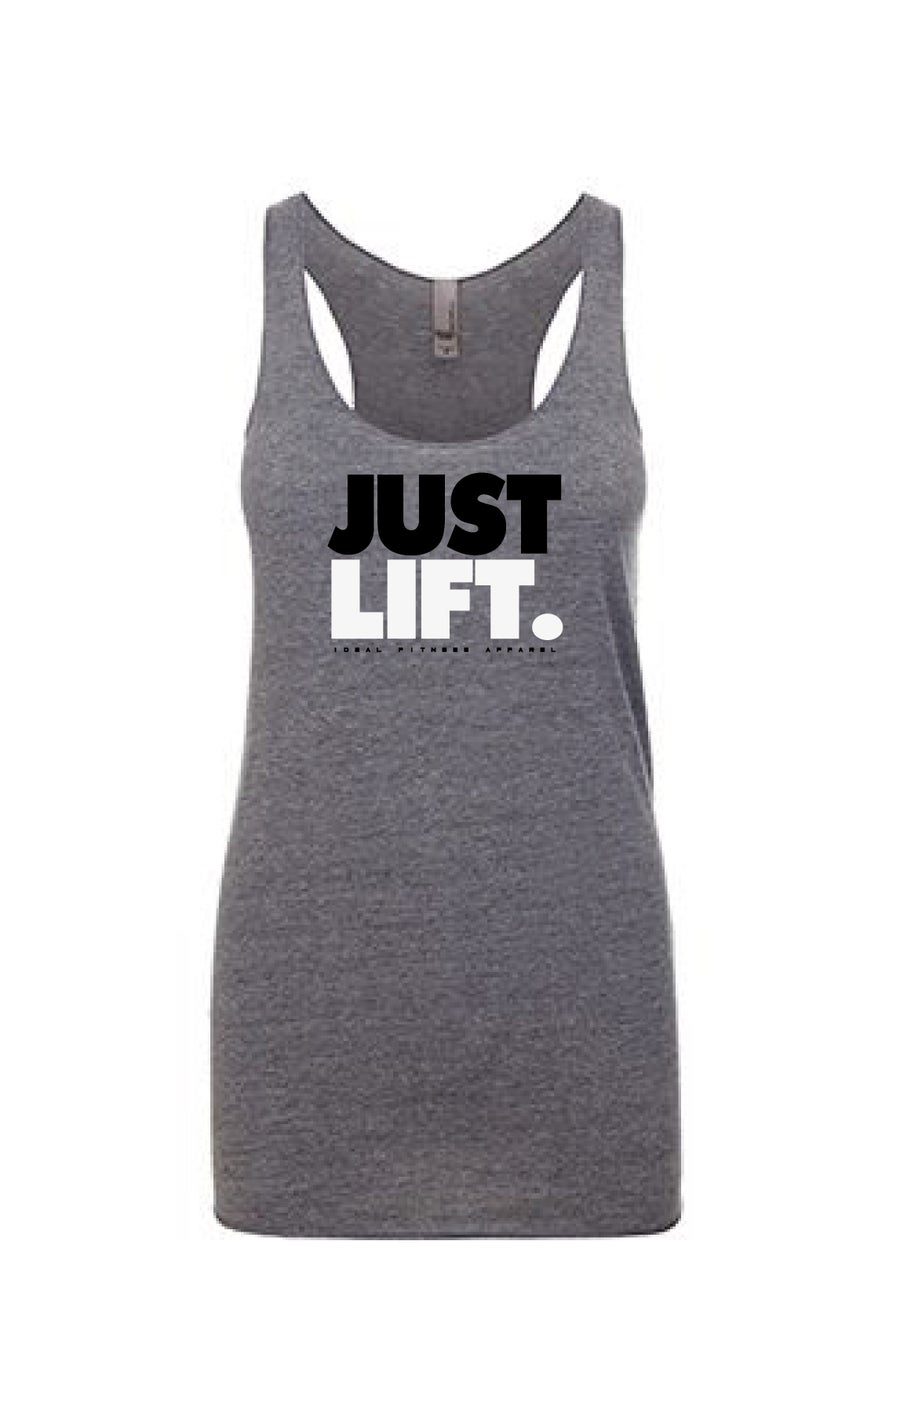 Image of Just Lift Women's Tank